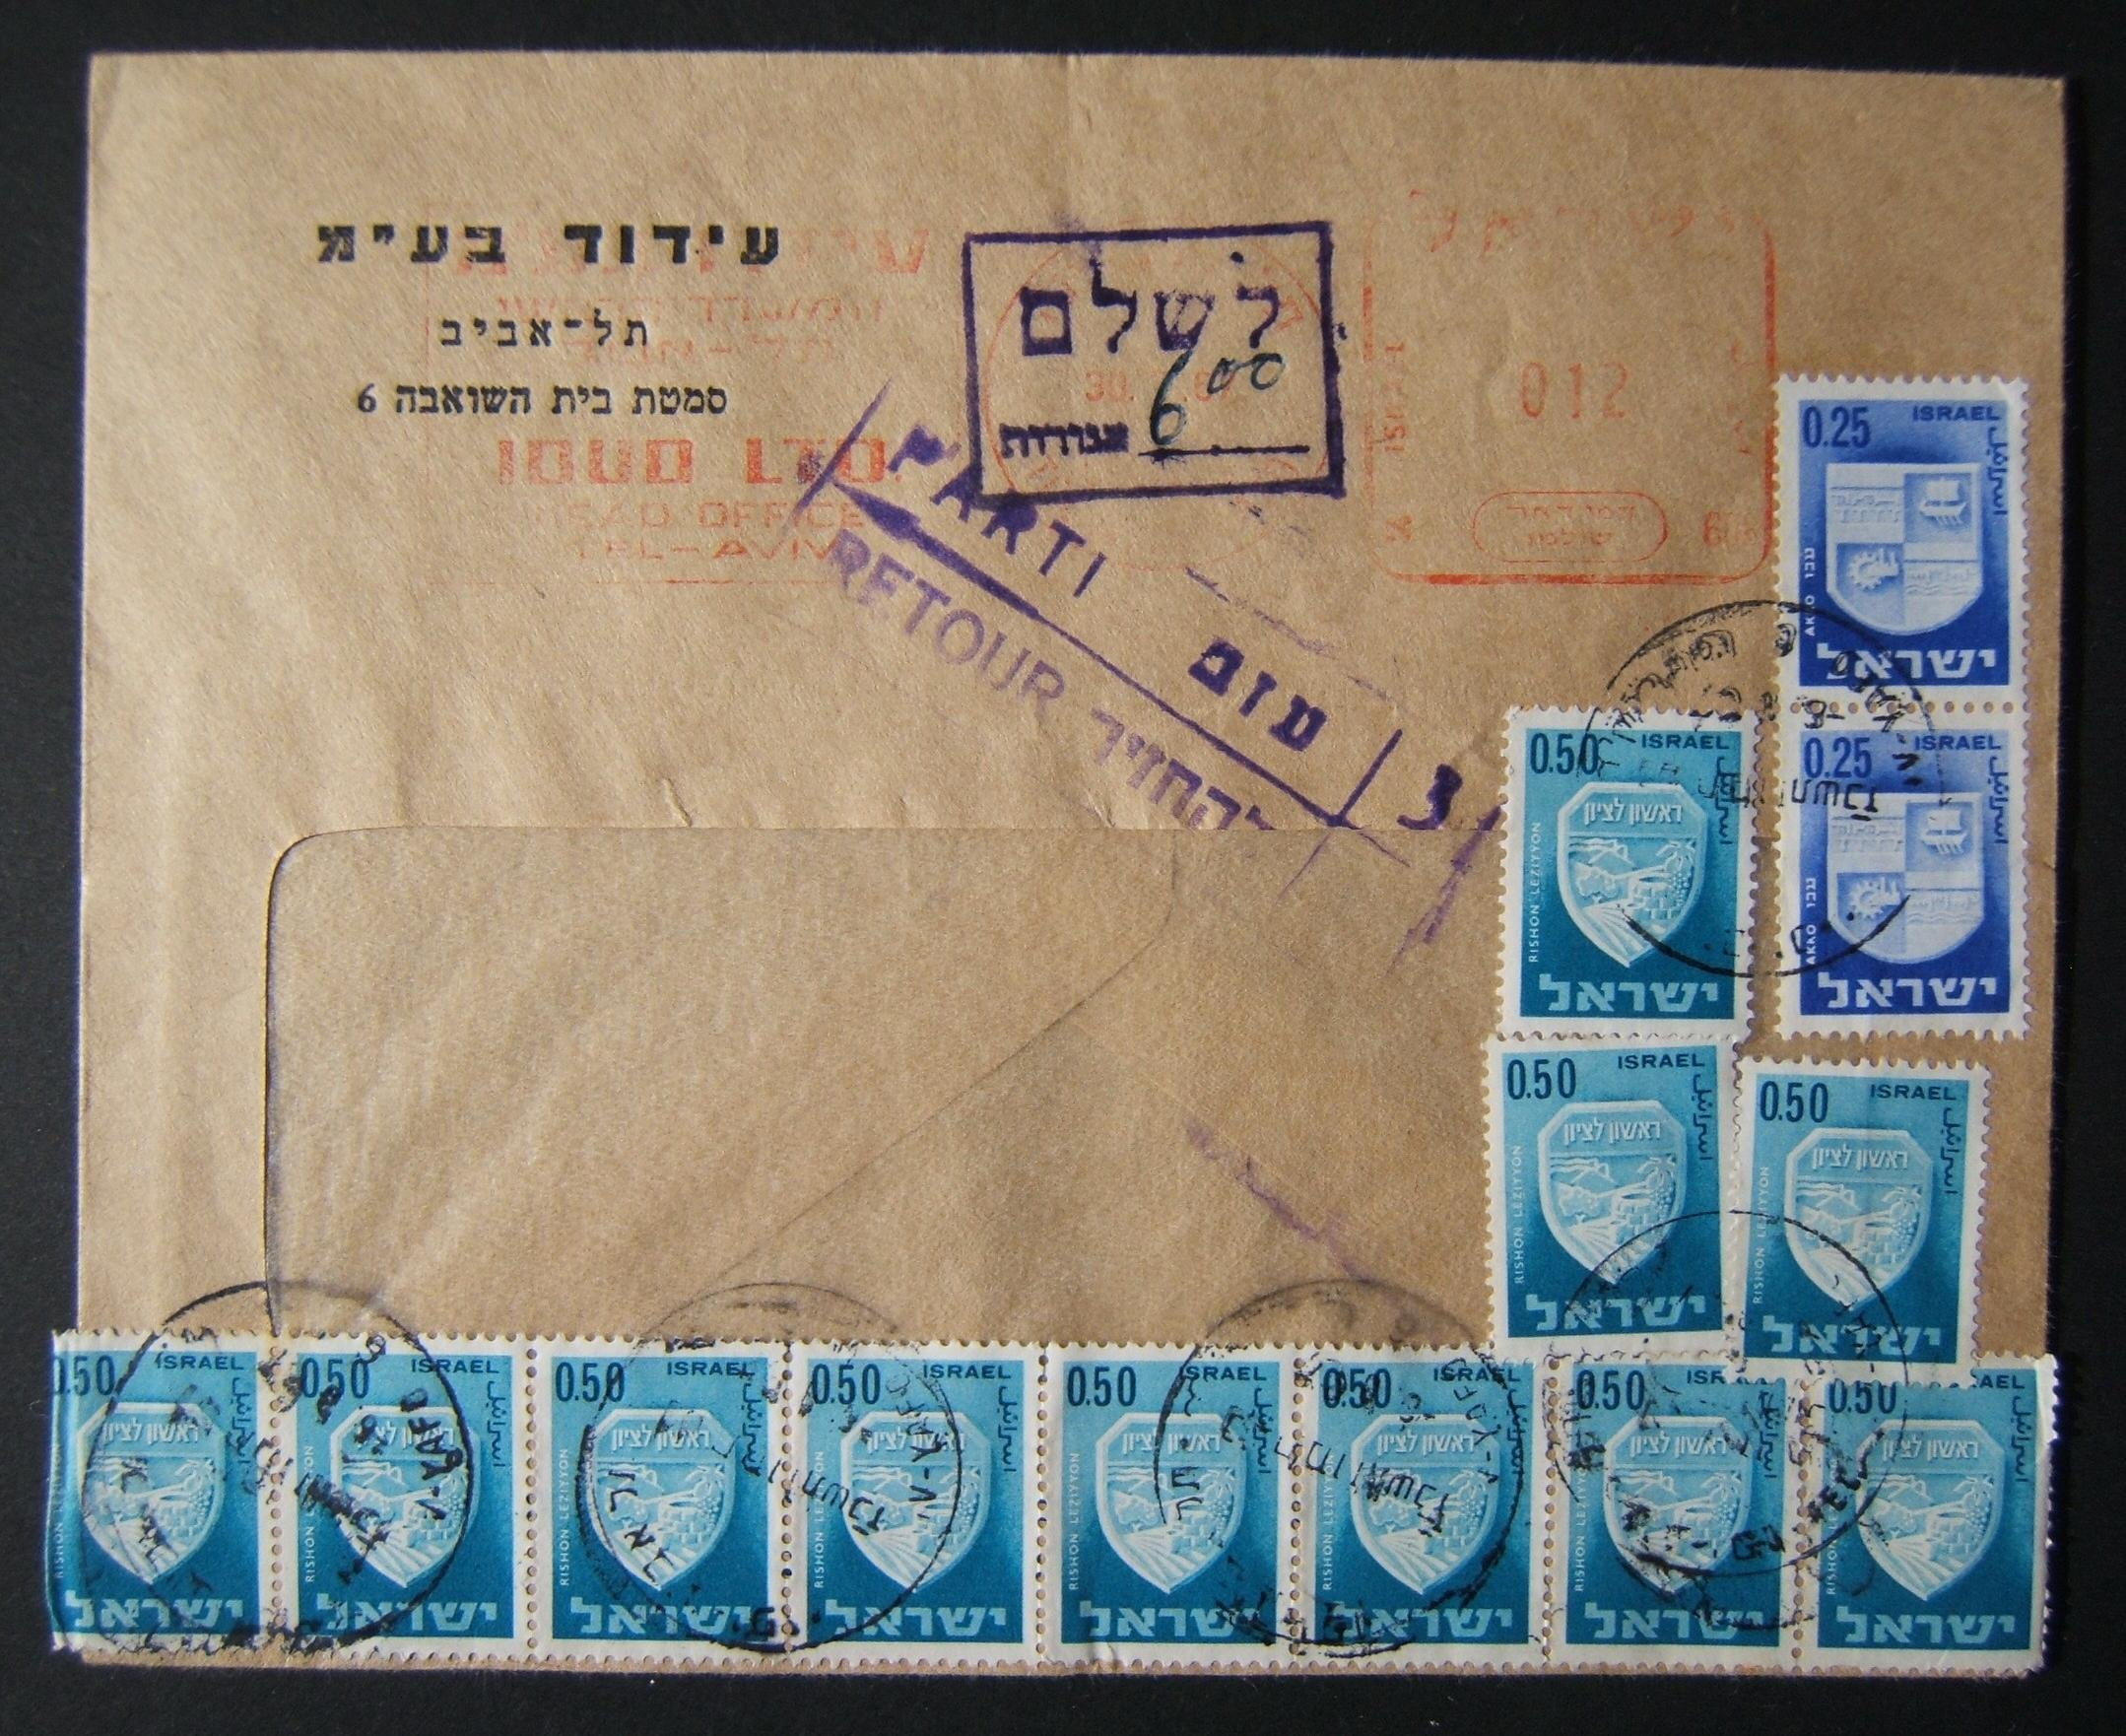 1967 domestic 'top of the pile' taxed franking: 30-7-67 pm comm. cv ex TLV franked by meter at DO-12 period 12 Ag rate, returned to sender as addressee left (cachet & manuscript);